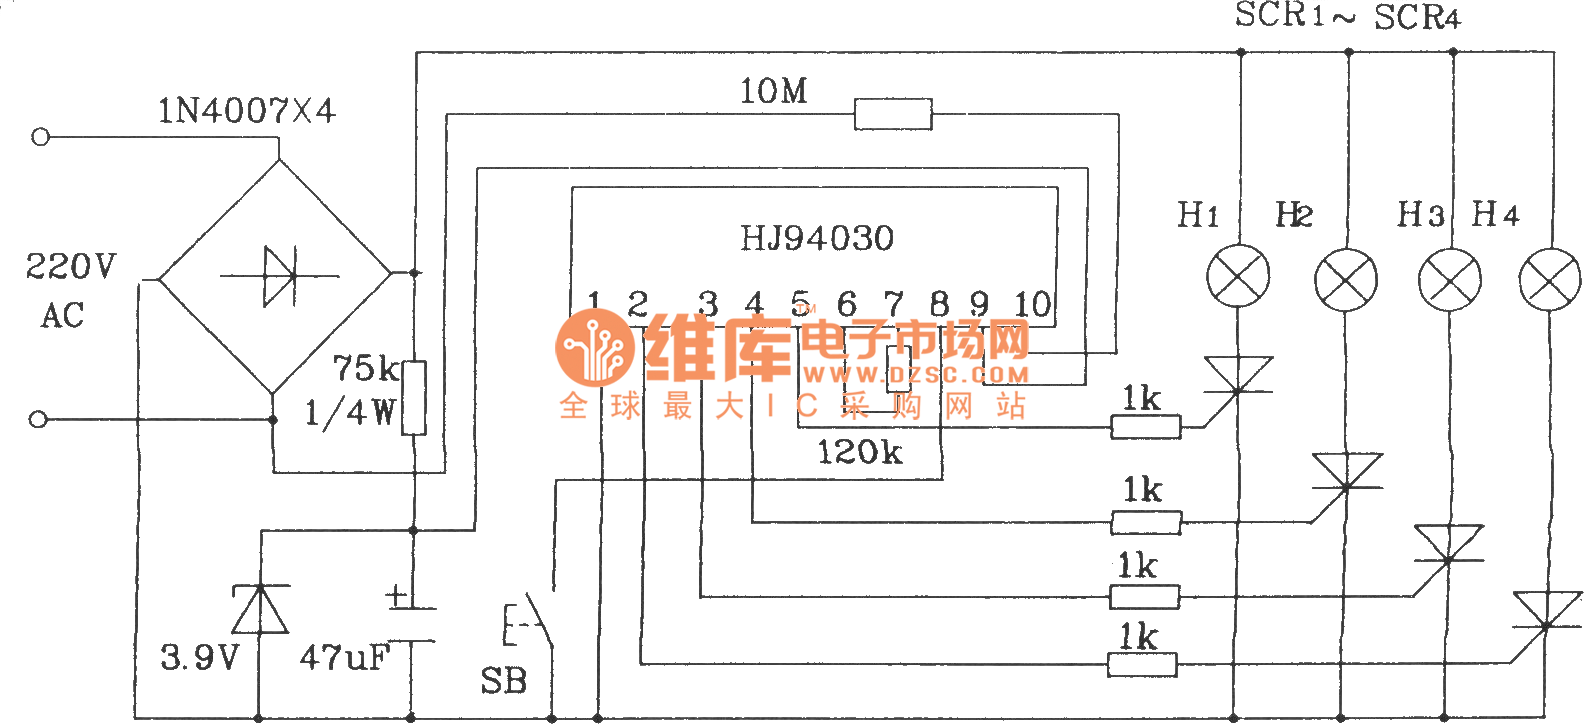 the typical application circuit of hj94030 multi-function light control ic